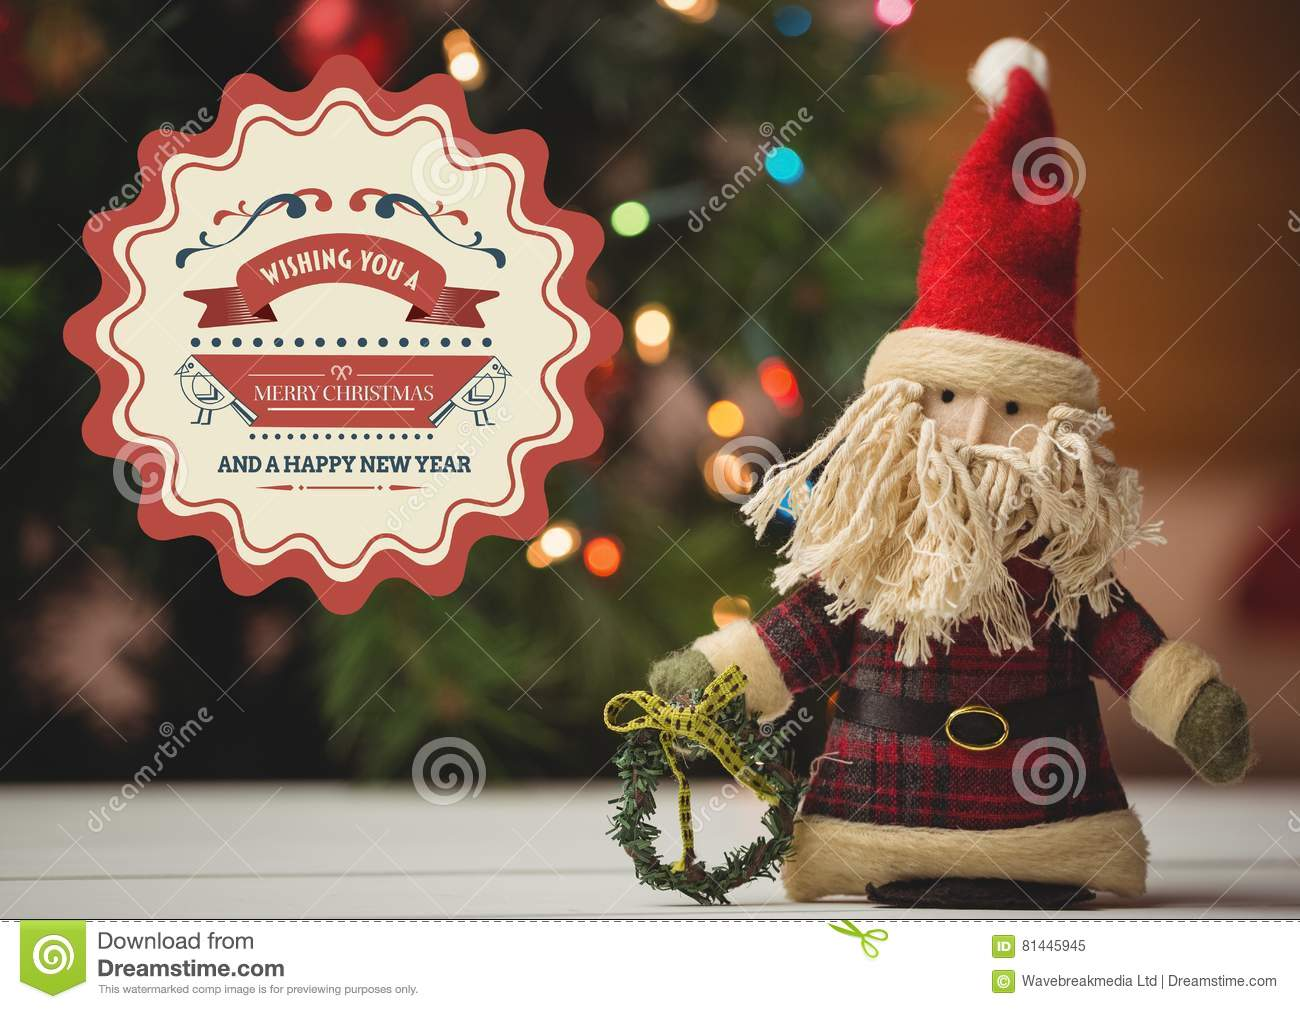 New Year Greeting Quotes With Santa Doll Stock Illustration